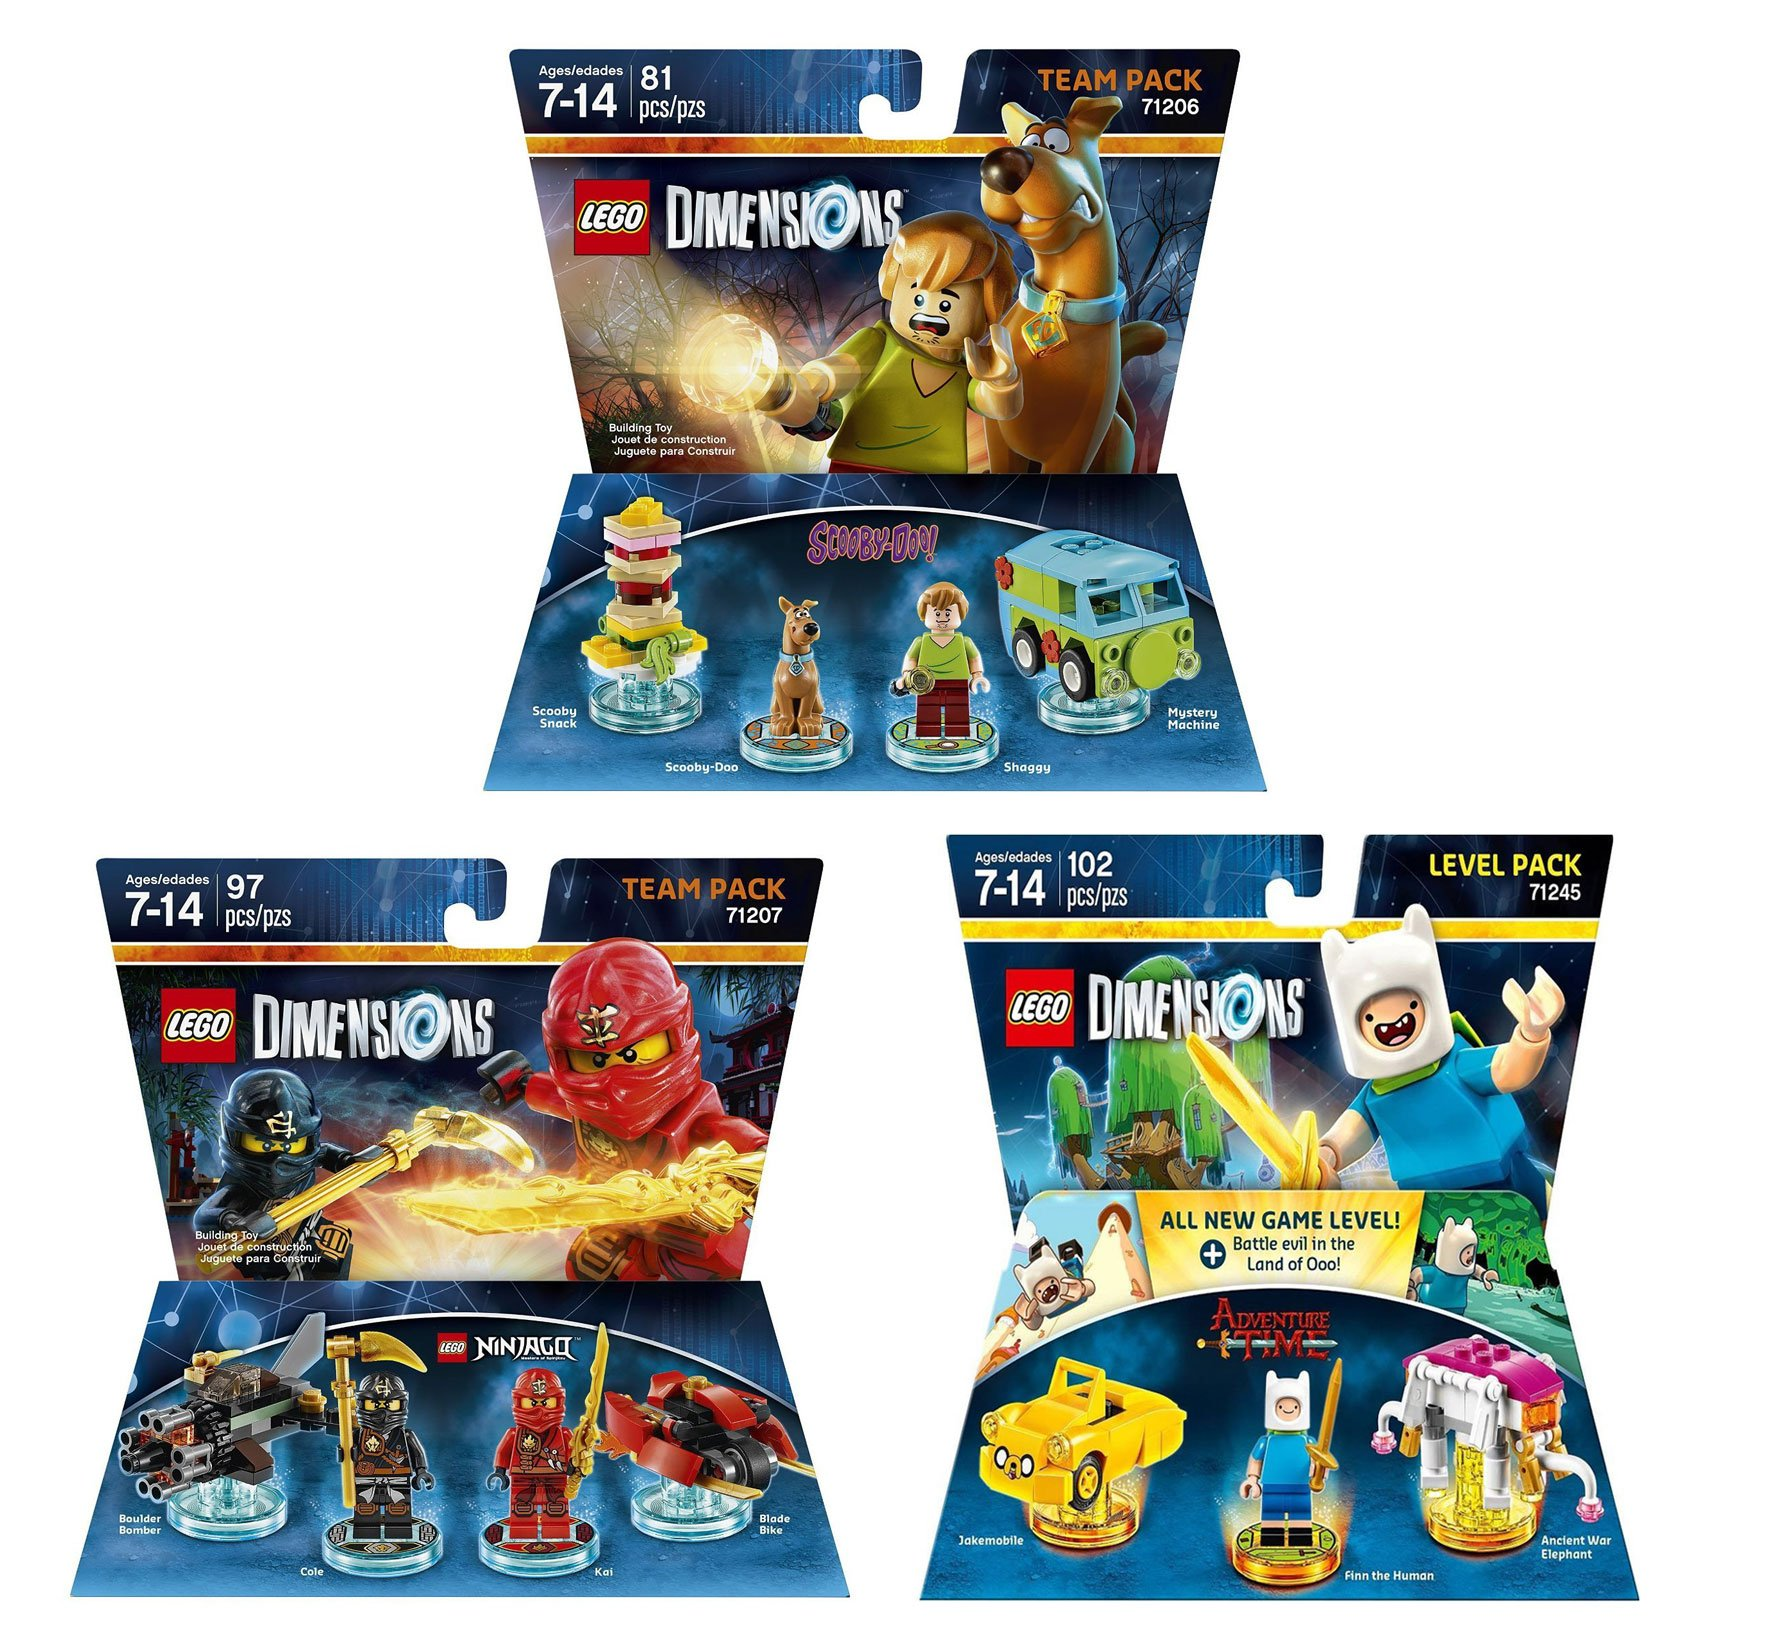 Ninjago Cole & Kai Team Pack + Adventure Time Finn The Human Level Pack + Scooby Doo Team Pack - Lego Dimensions (Non Machine Specific) by WB Lego (Image #1)